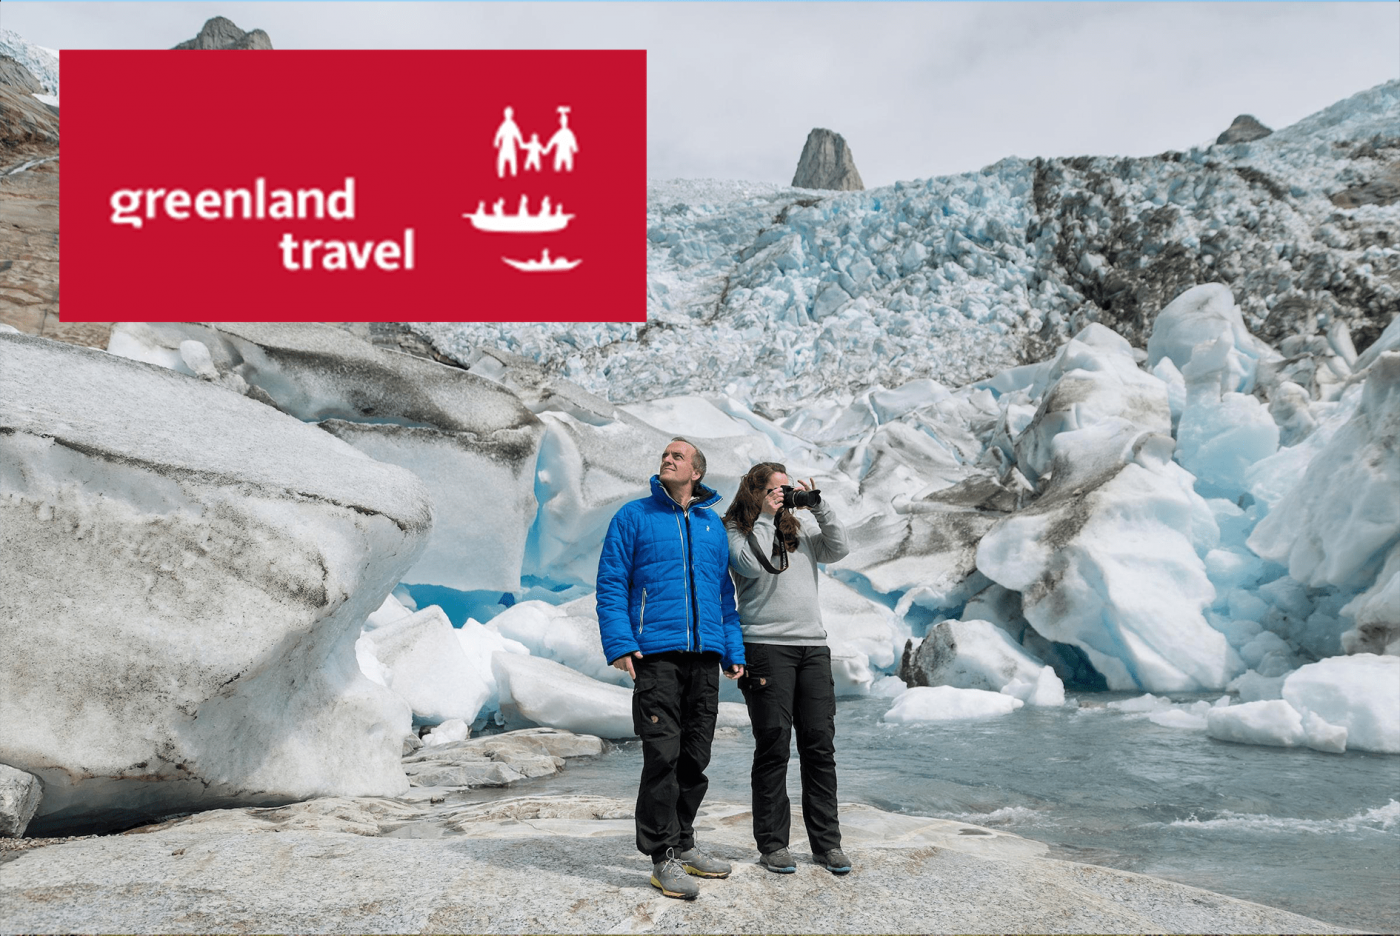 Greenland Travel: Zoom in on Ice and Snow